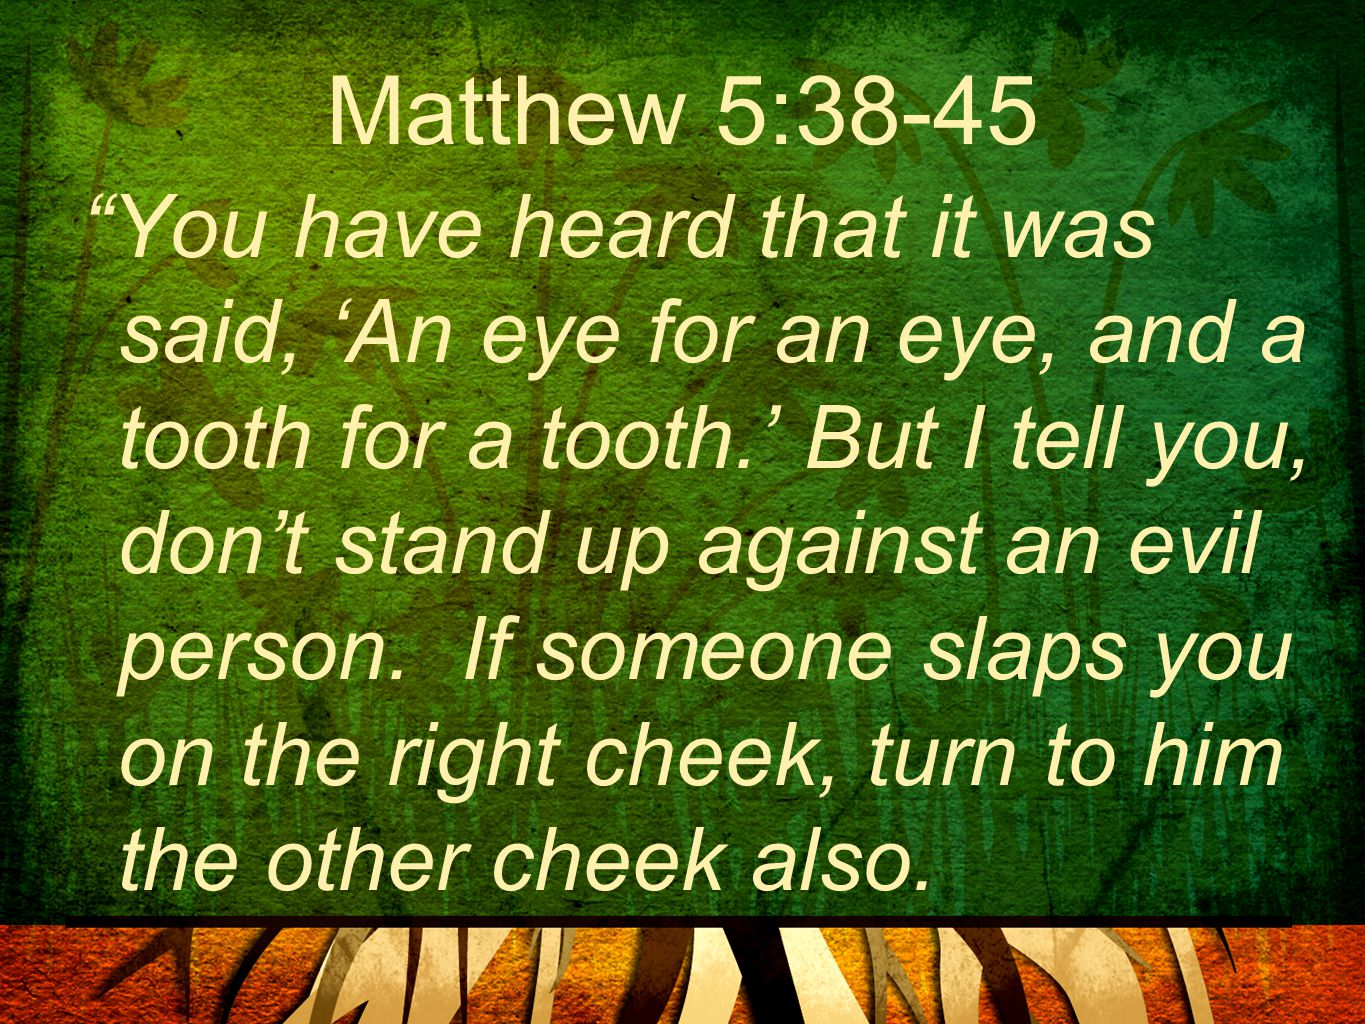 "Matthew 5:38-45 ""You have heard that it was said, 'An eye for an eye, and a tooth for a tooth.' But I tell you, don't stand up against an evil person."